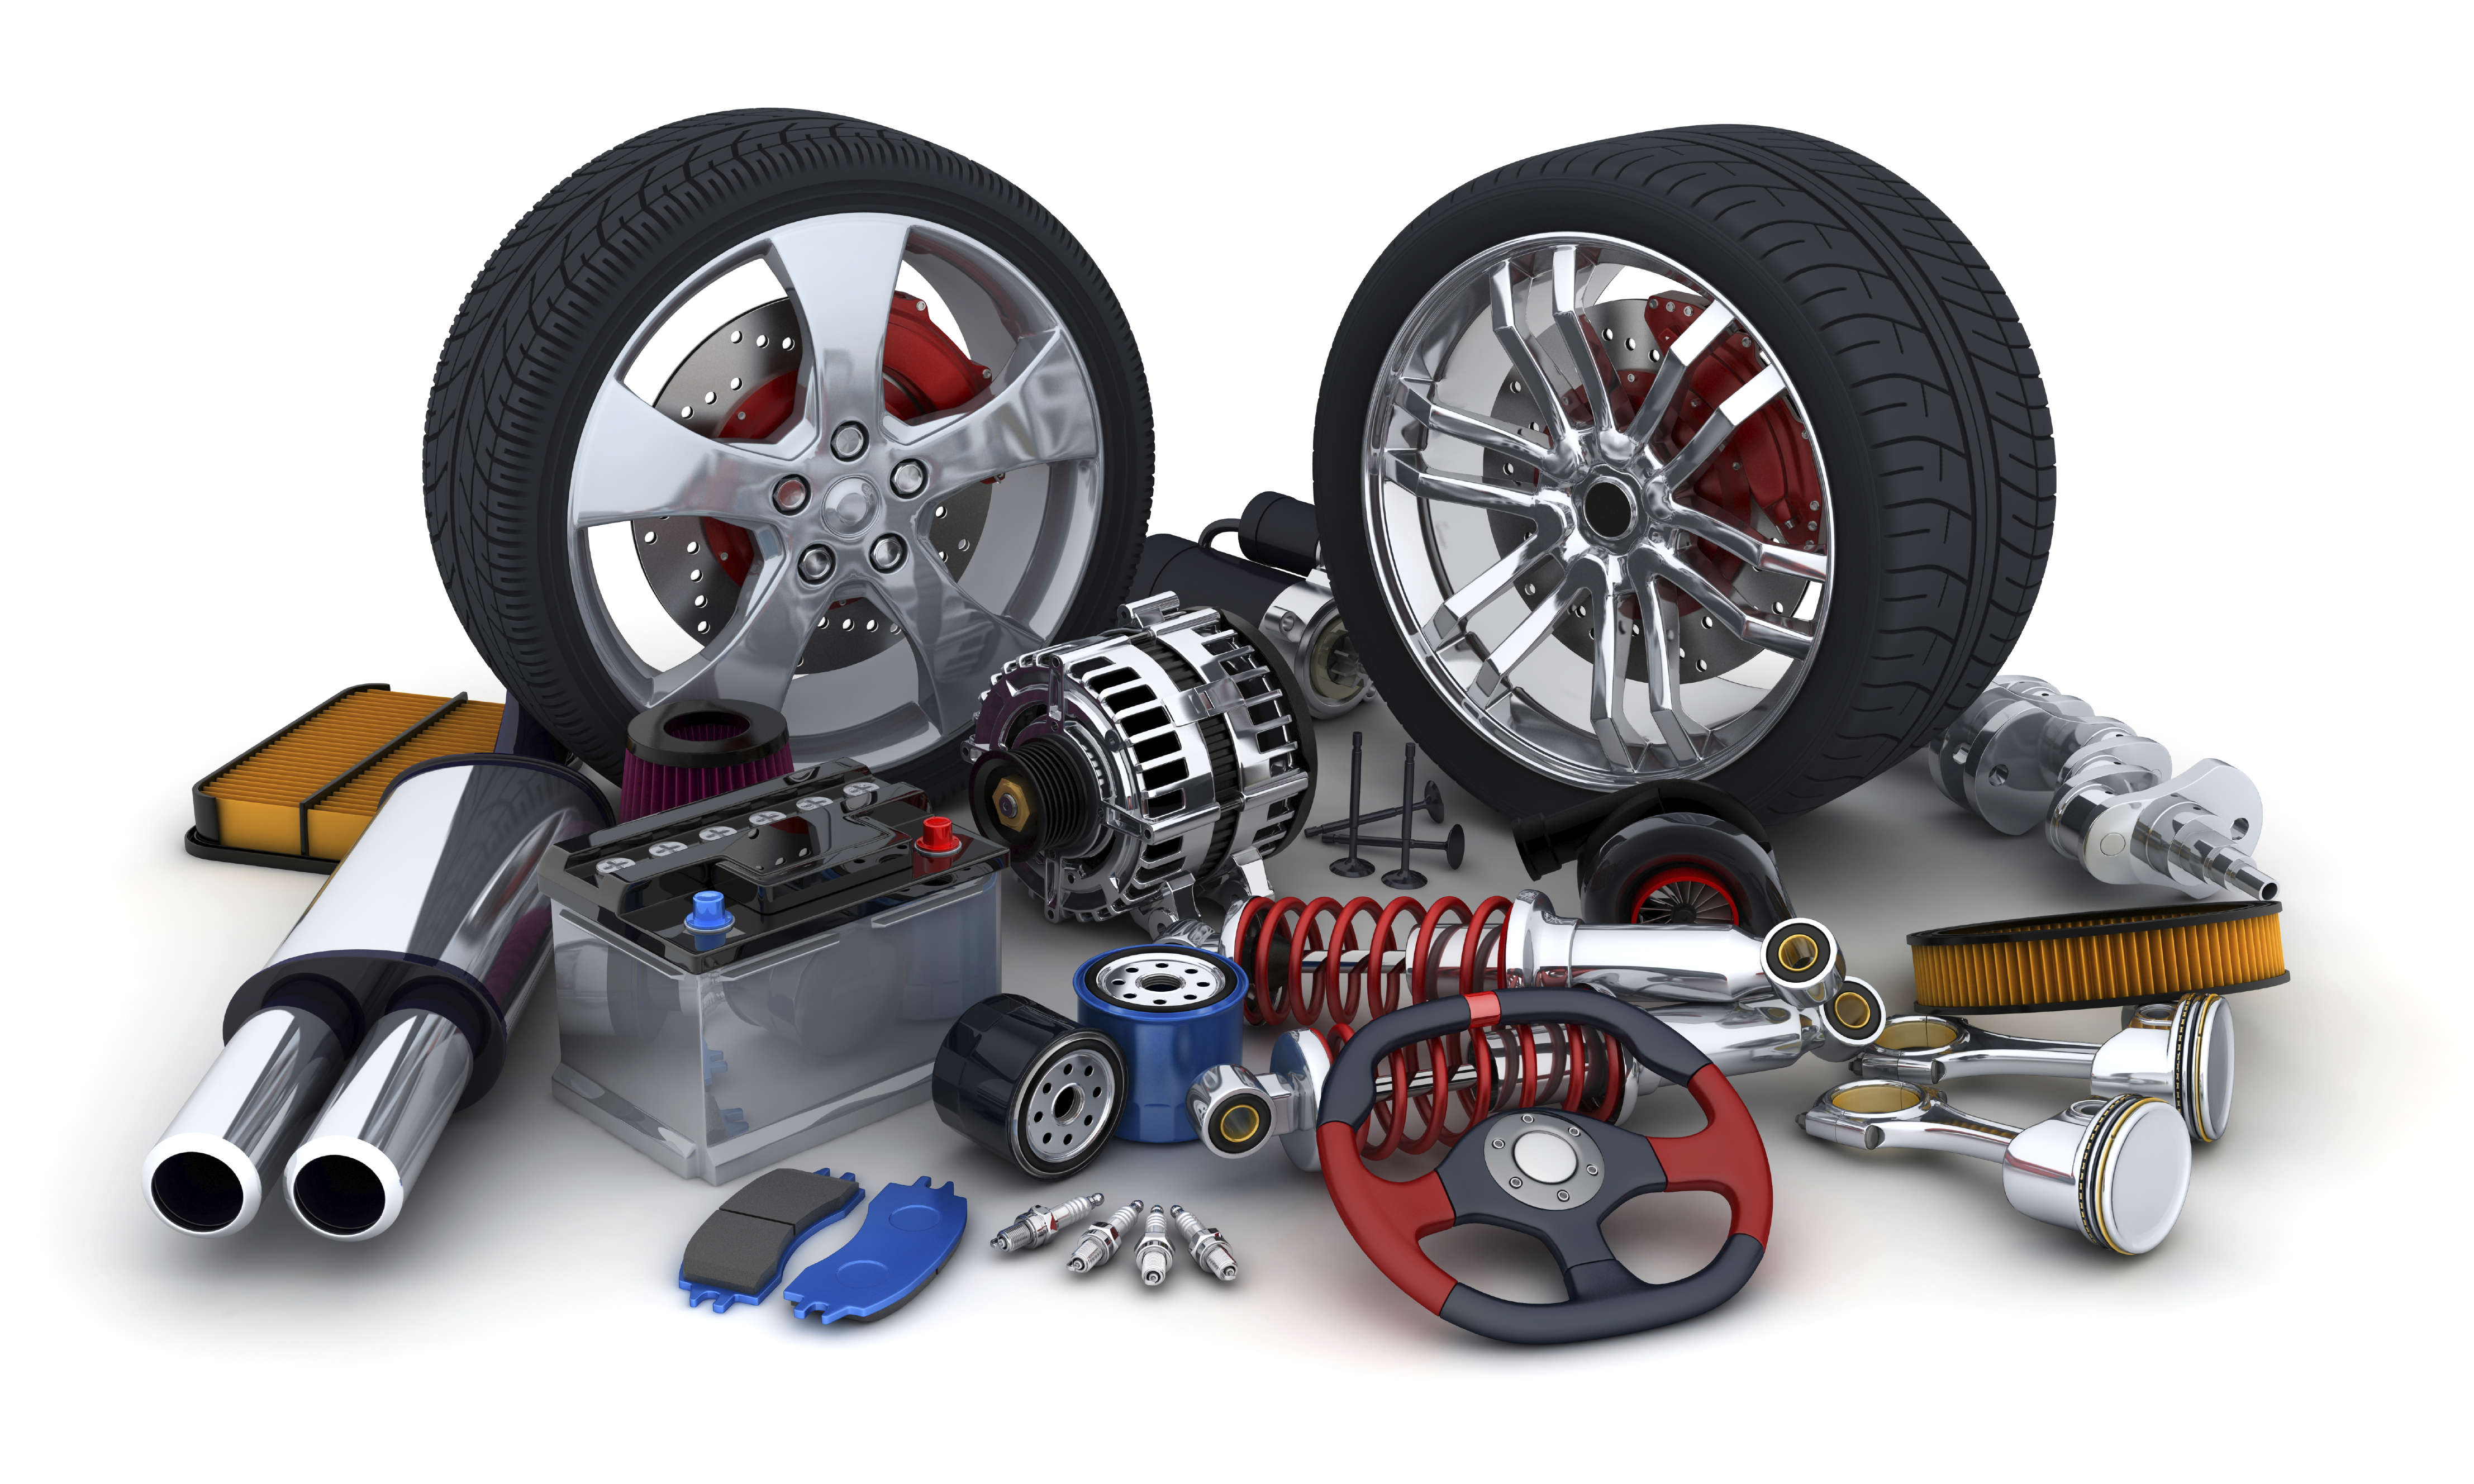 Car parts - St. Vincent and the Grenadines